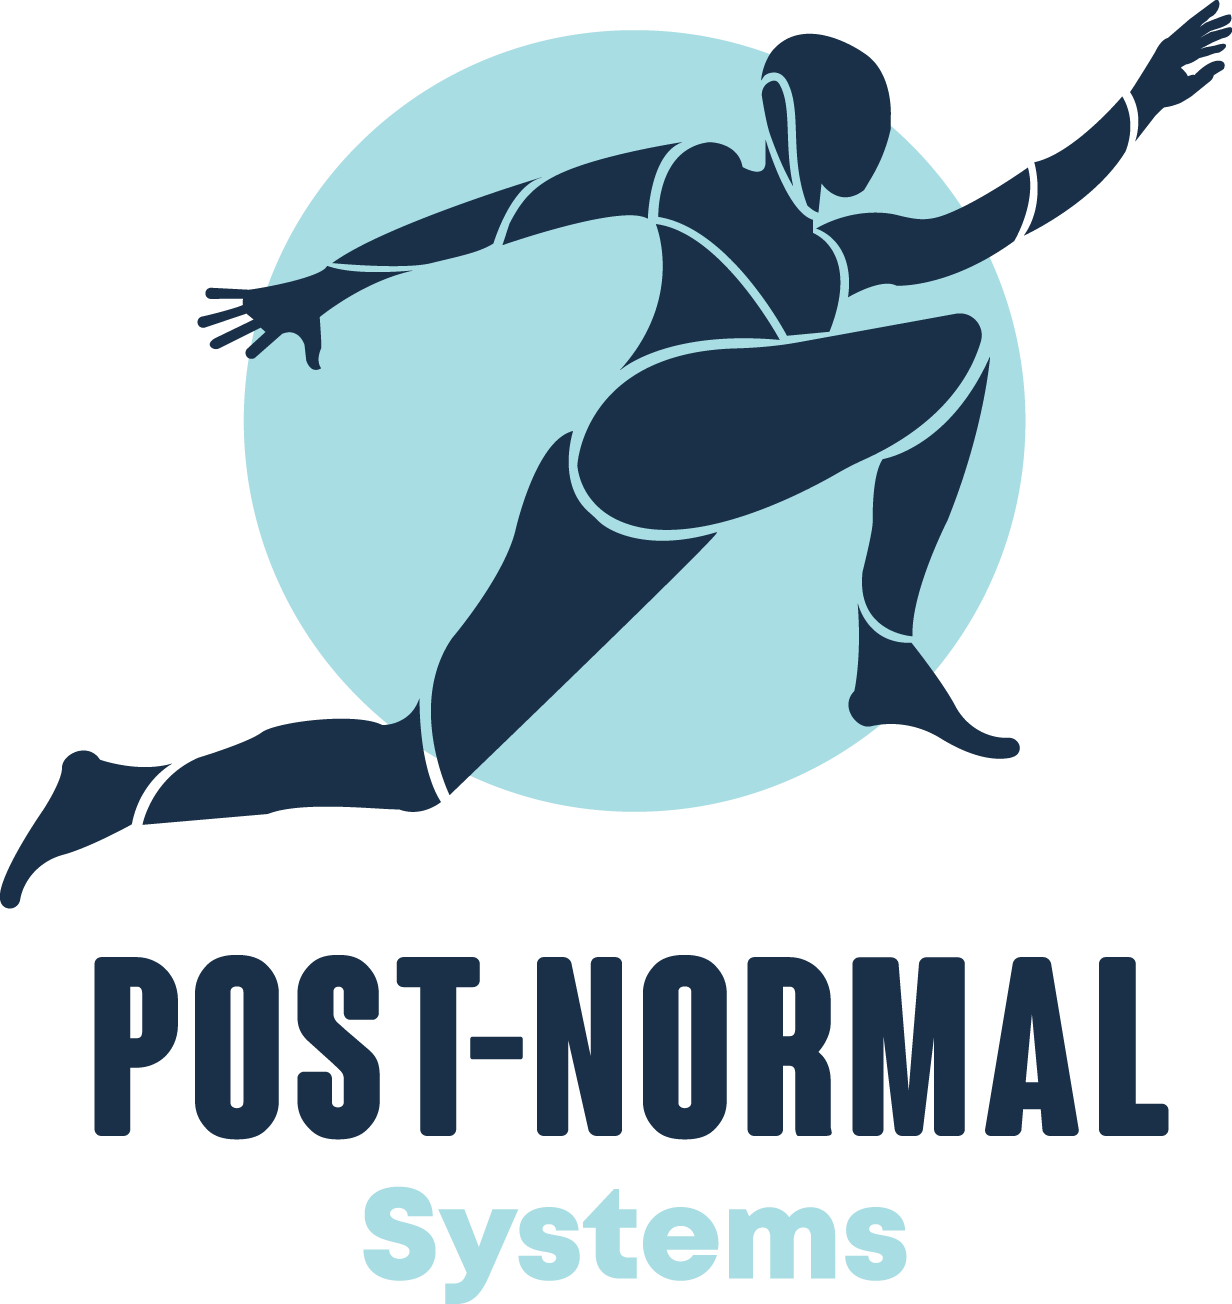 Post-Normal Systems